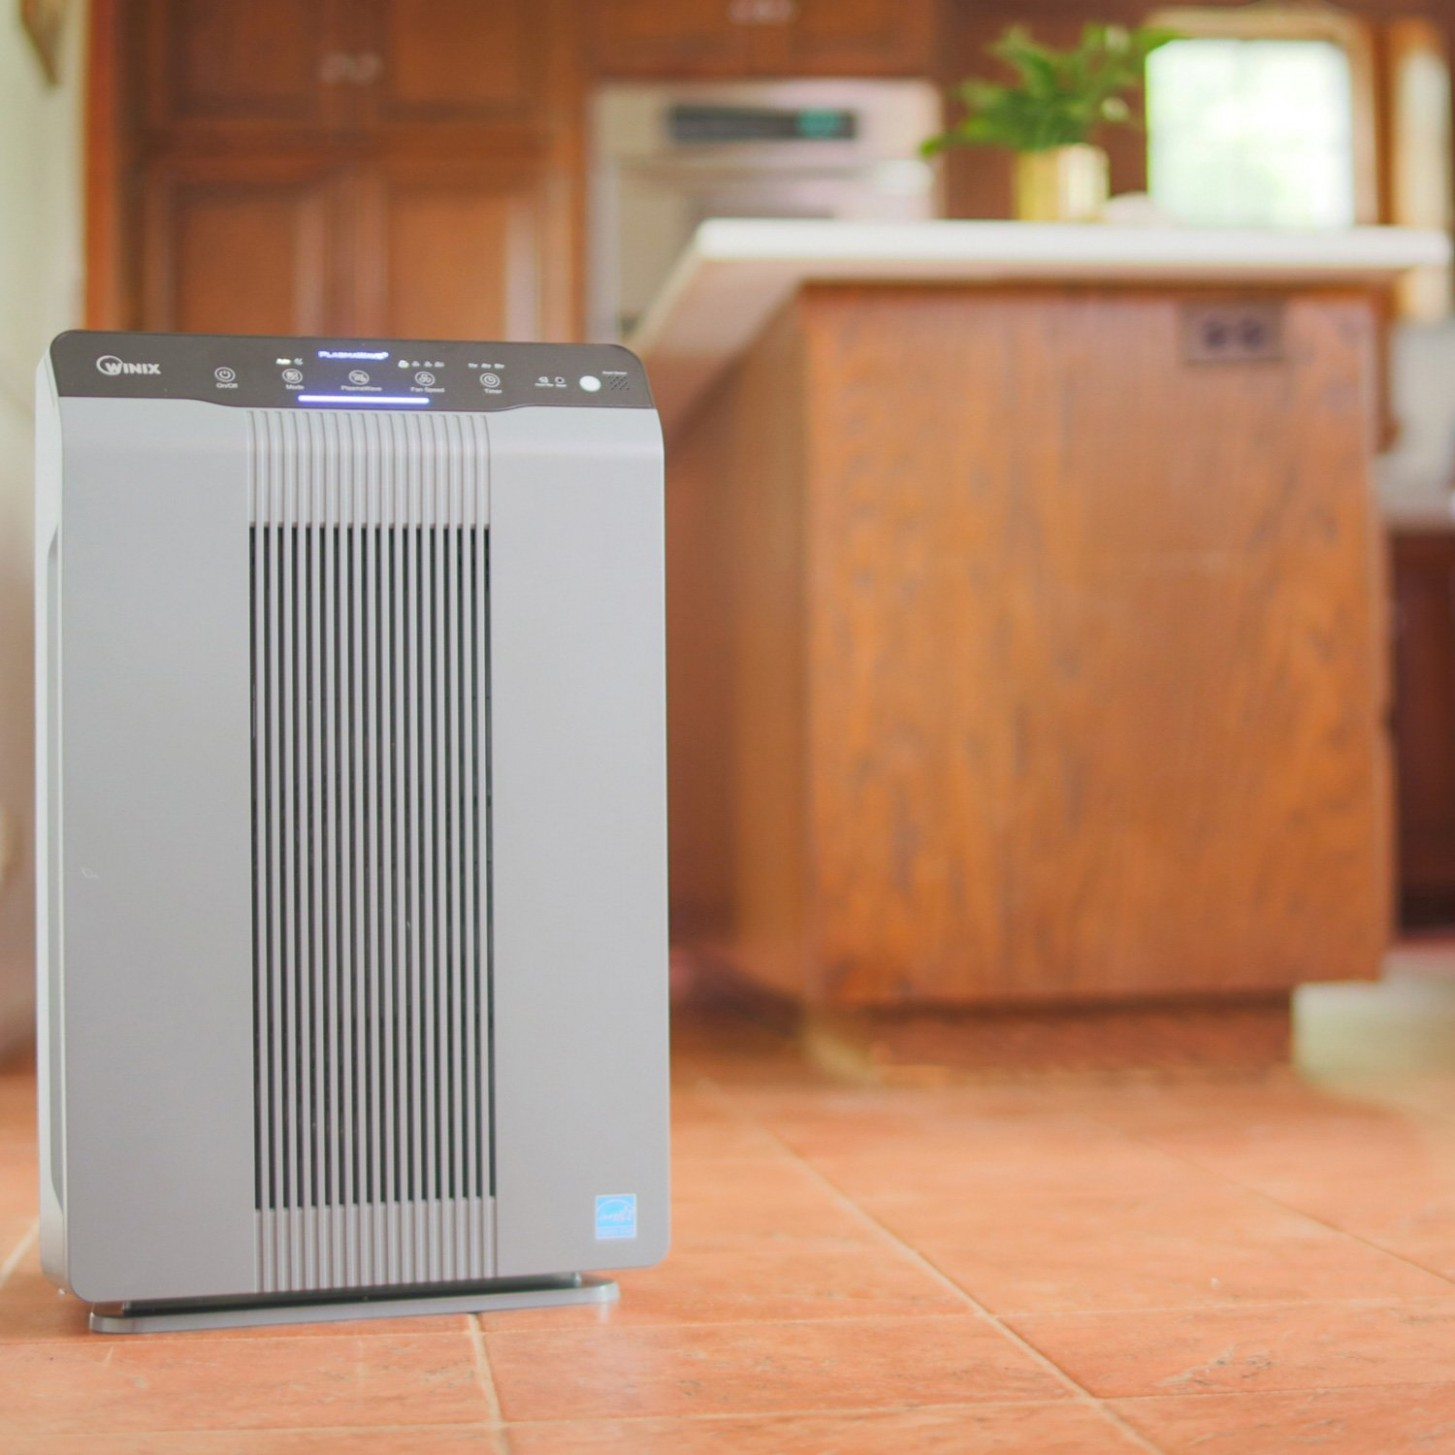 Top 12 Best Air Purifier For Baby Room Reviews & Buying Guide - Baby Room Reviews